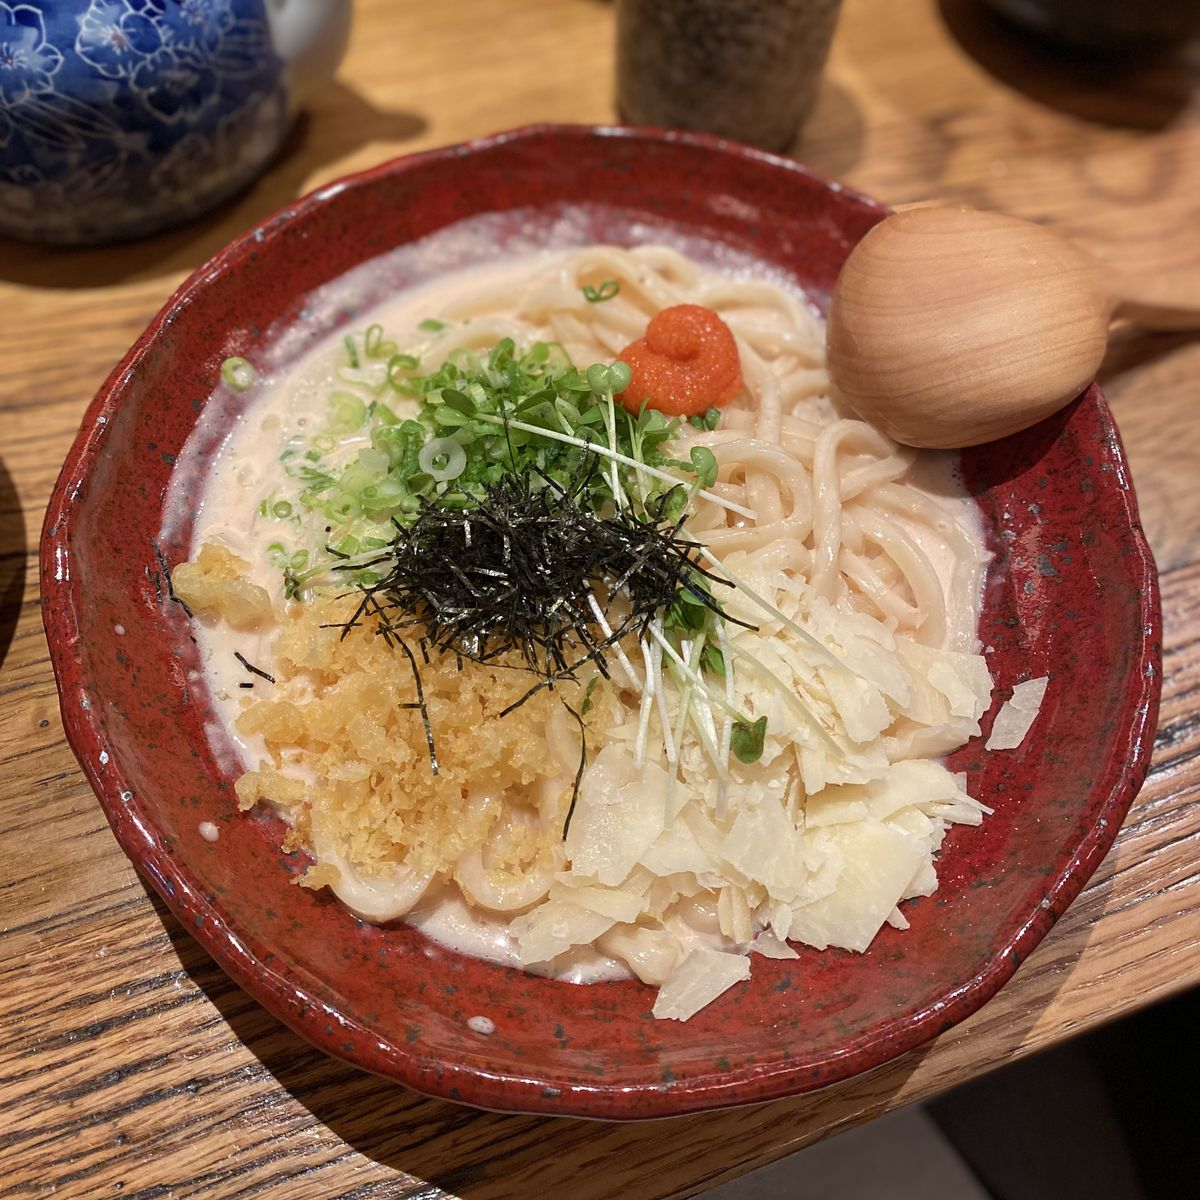 Mentai creamy sauce udon topped with green onions, slivers of seaweed, and pieces of tempura batter from Udon Mugizo in Japantown